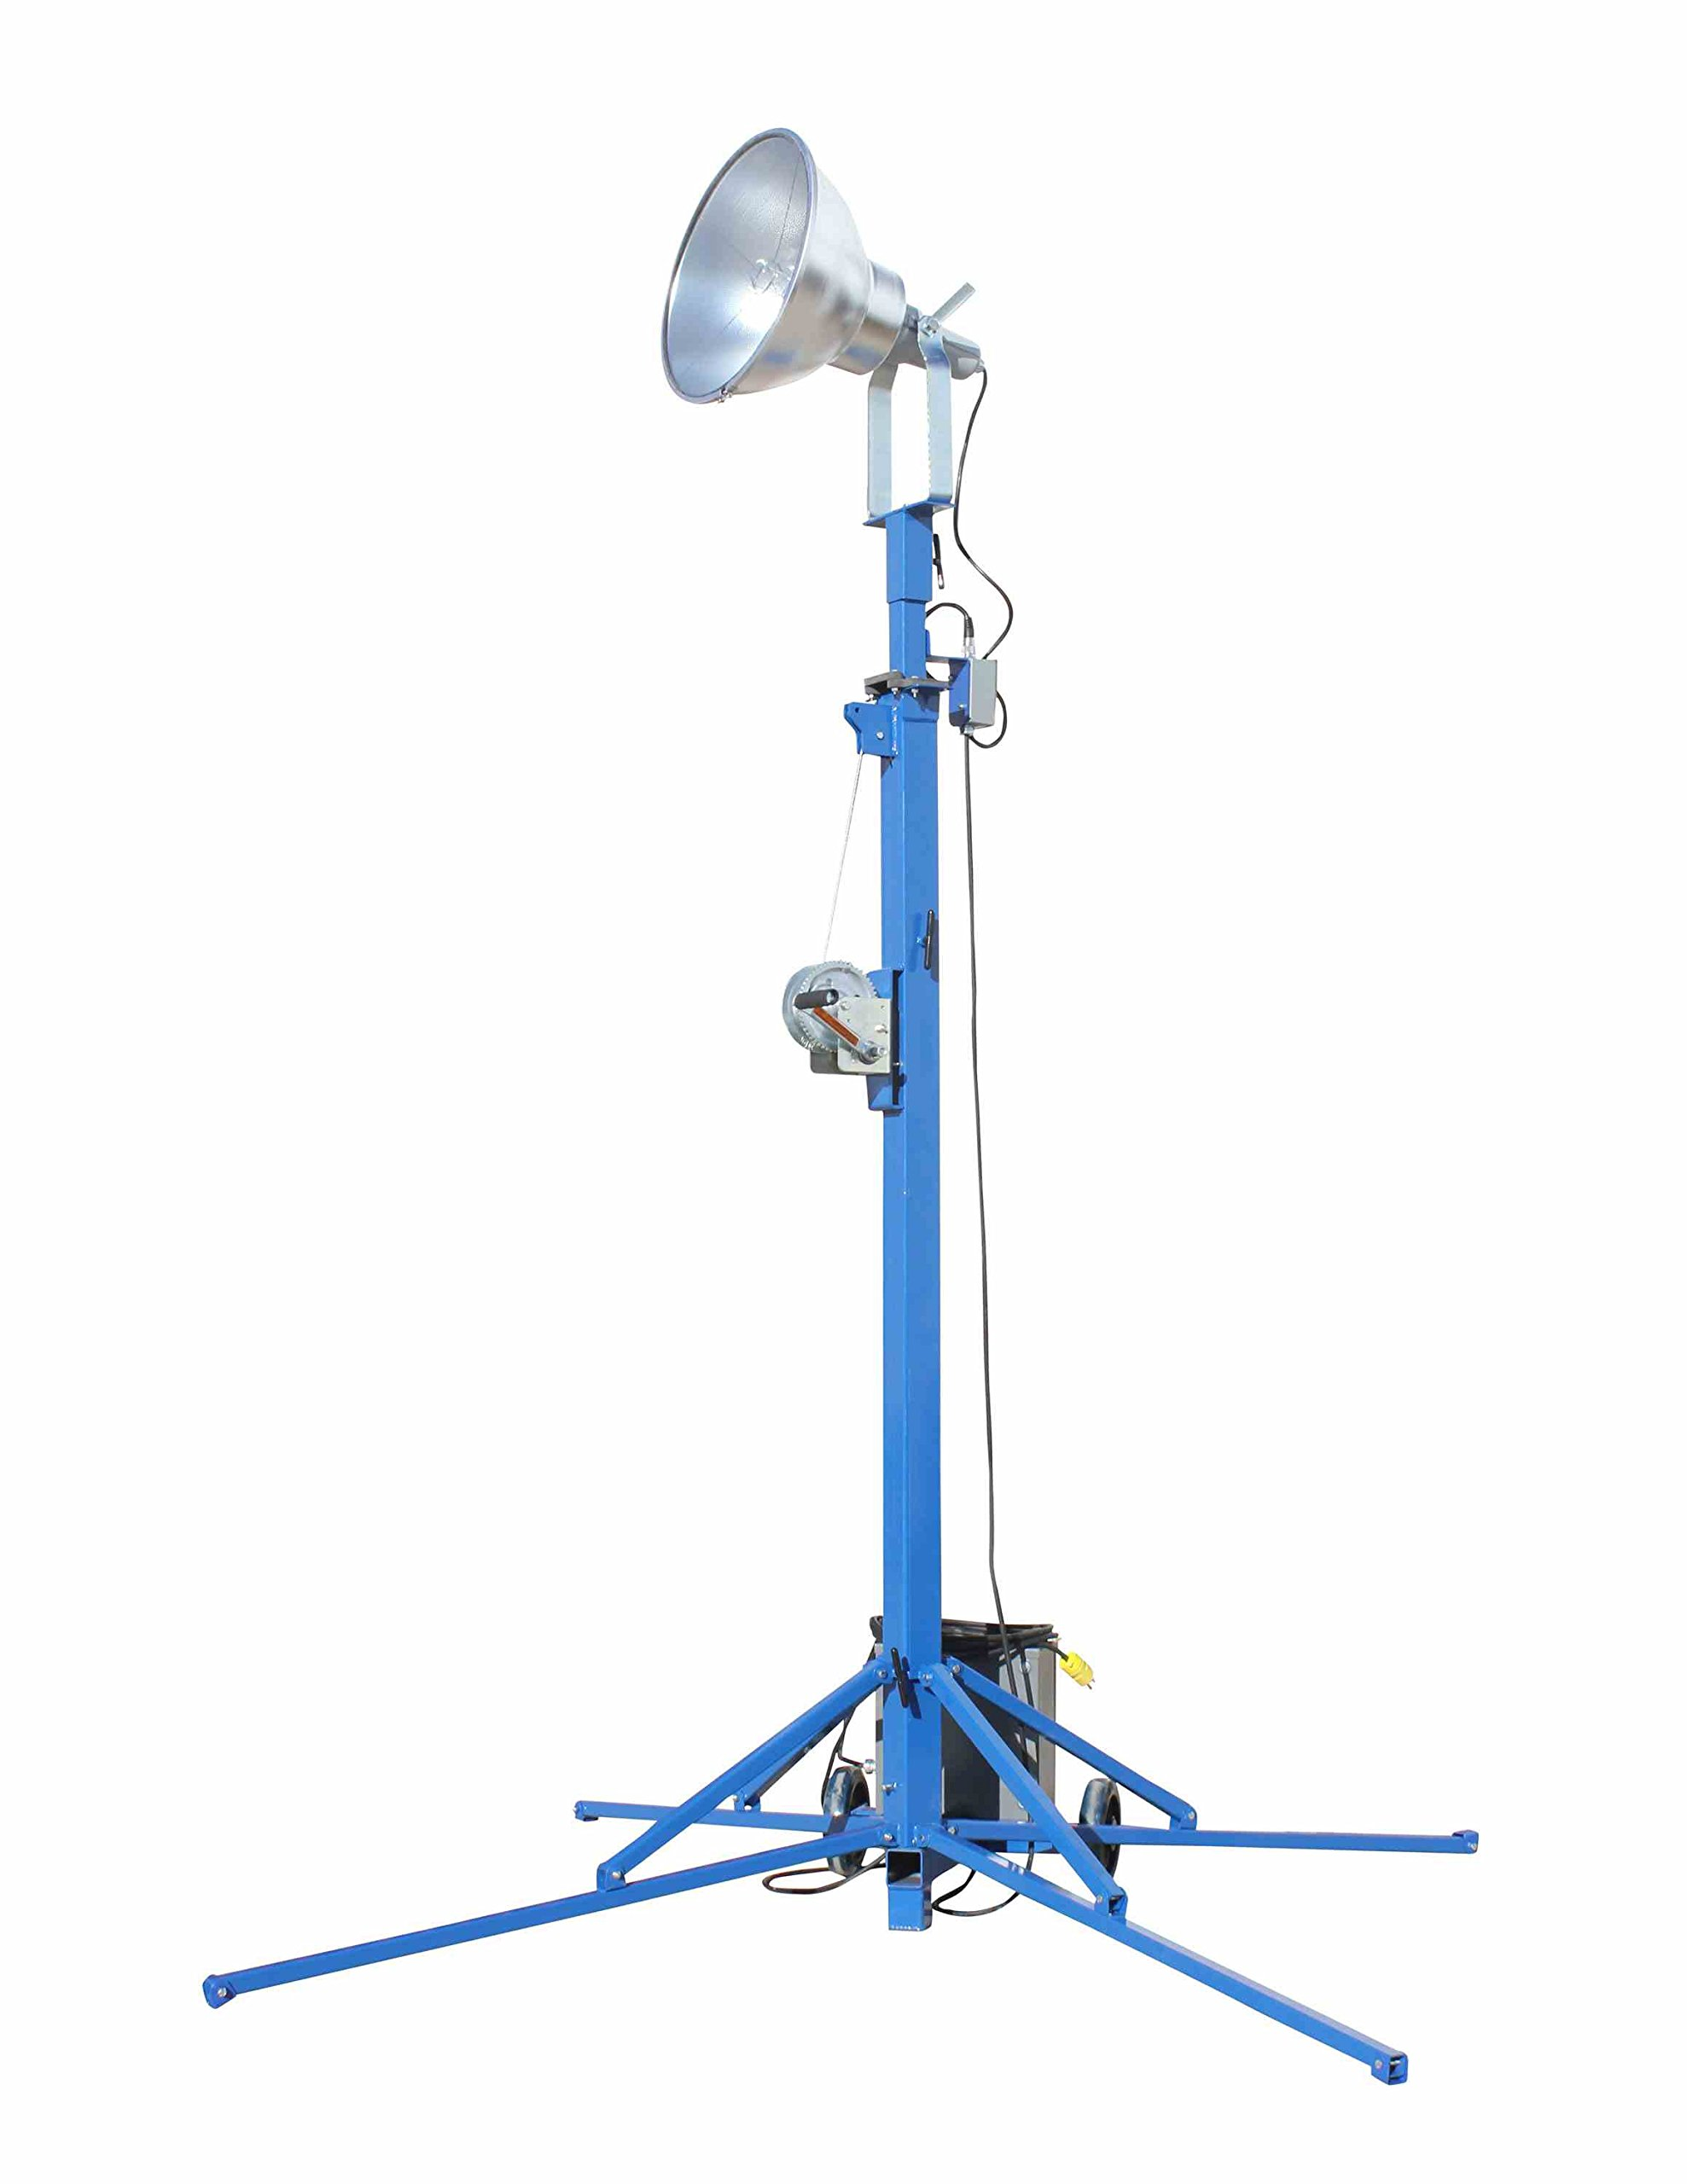 Portable Light Tower - 1000 Watt Metal Halide - Covers 23,000 SF - Extends to 12 feet(-240 Volts) by Larson Electronics (Image #6)